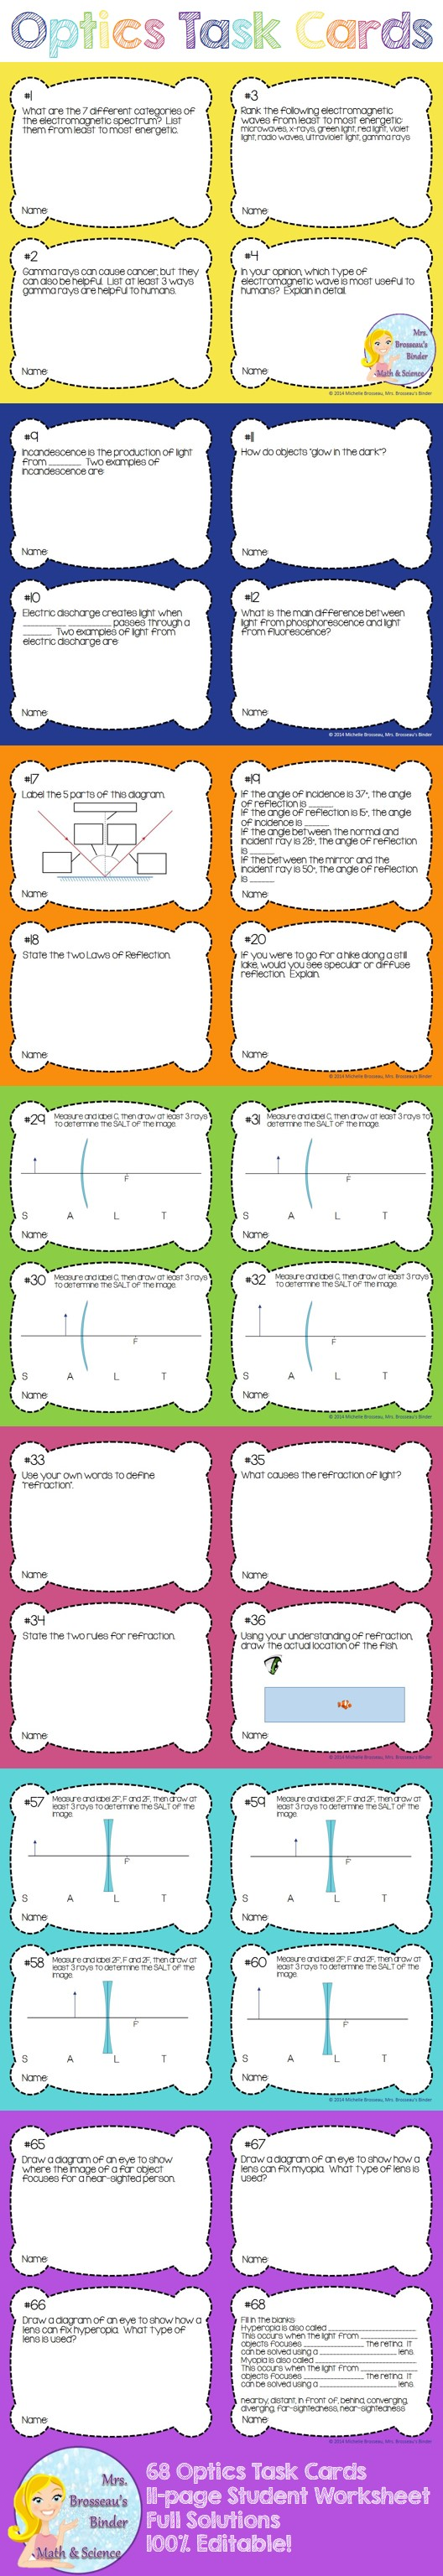 Optics Task Cards 68 Cards With Student Worksheets And Full Solutions Topics Electromagnetic Spectrum Physics High School Task Cards Middle School Science